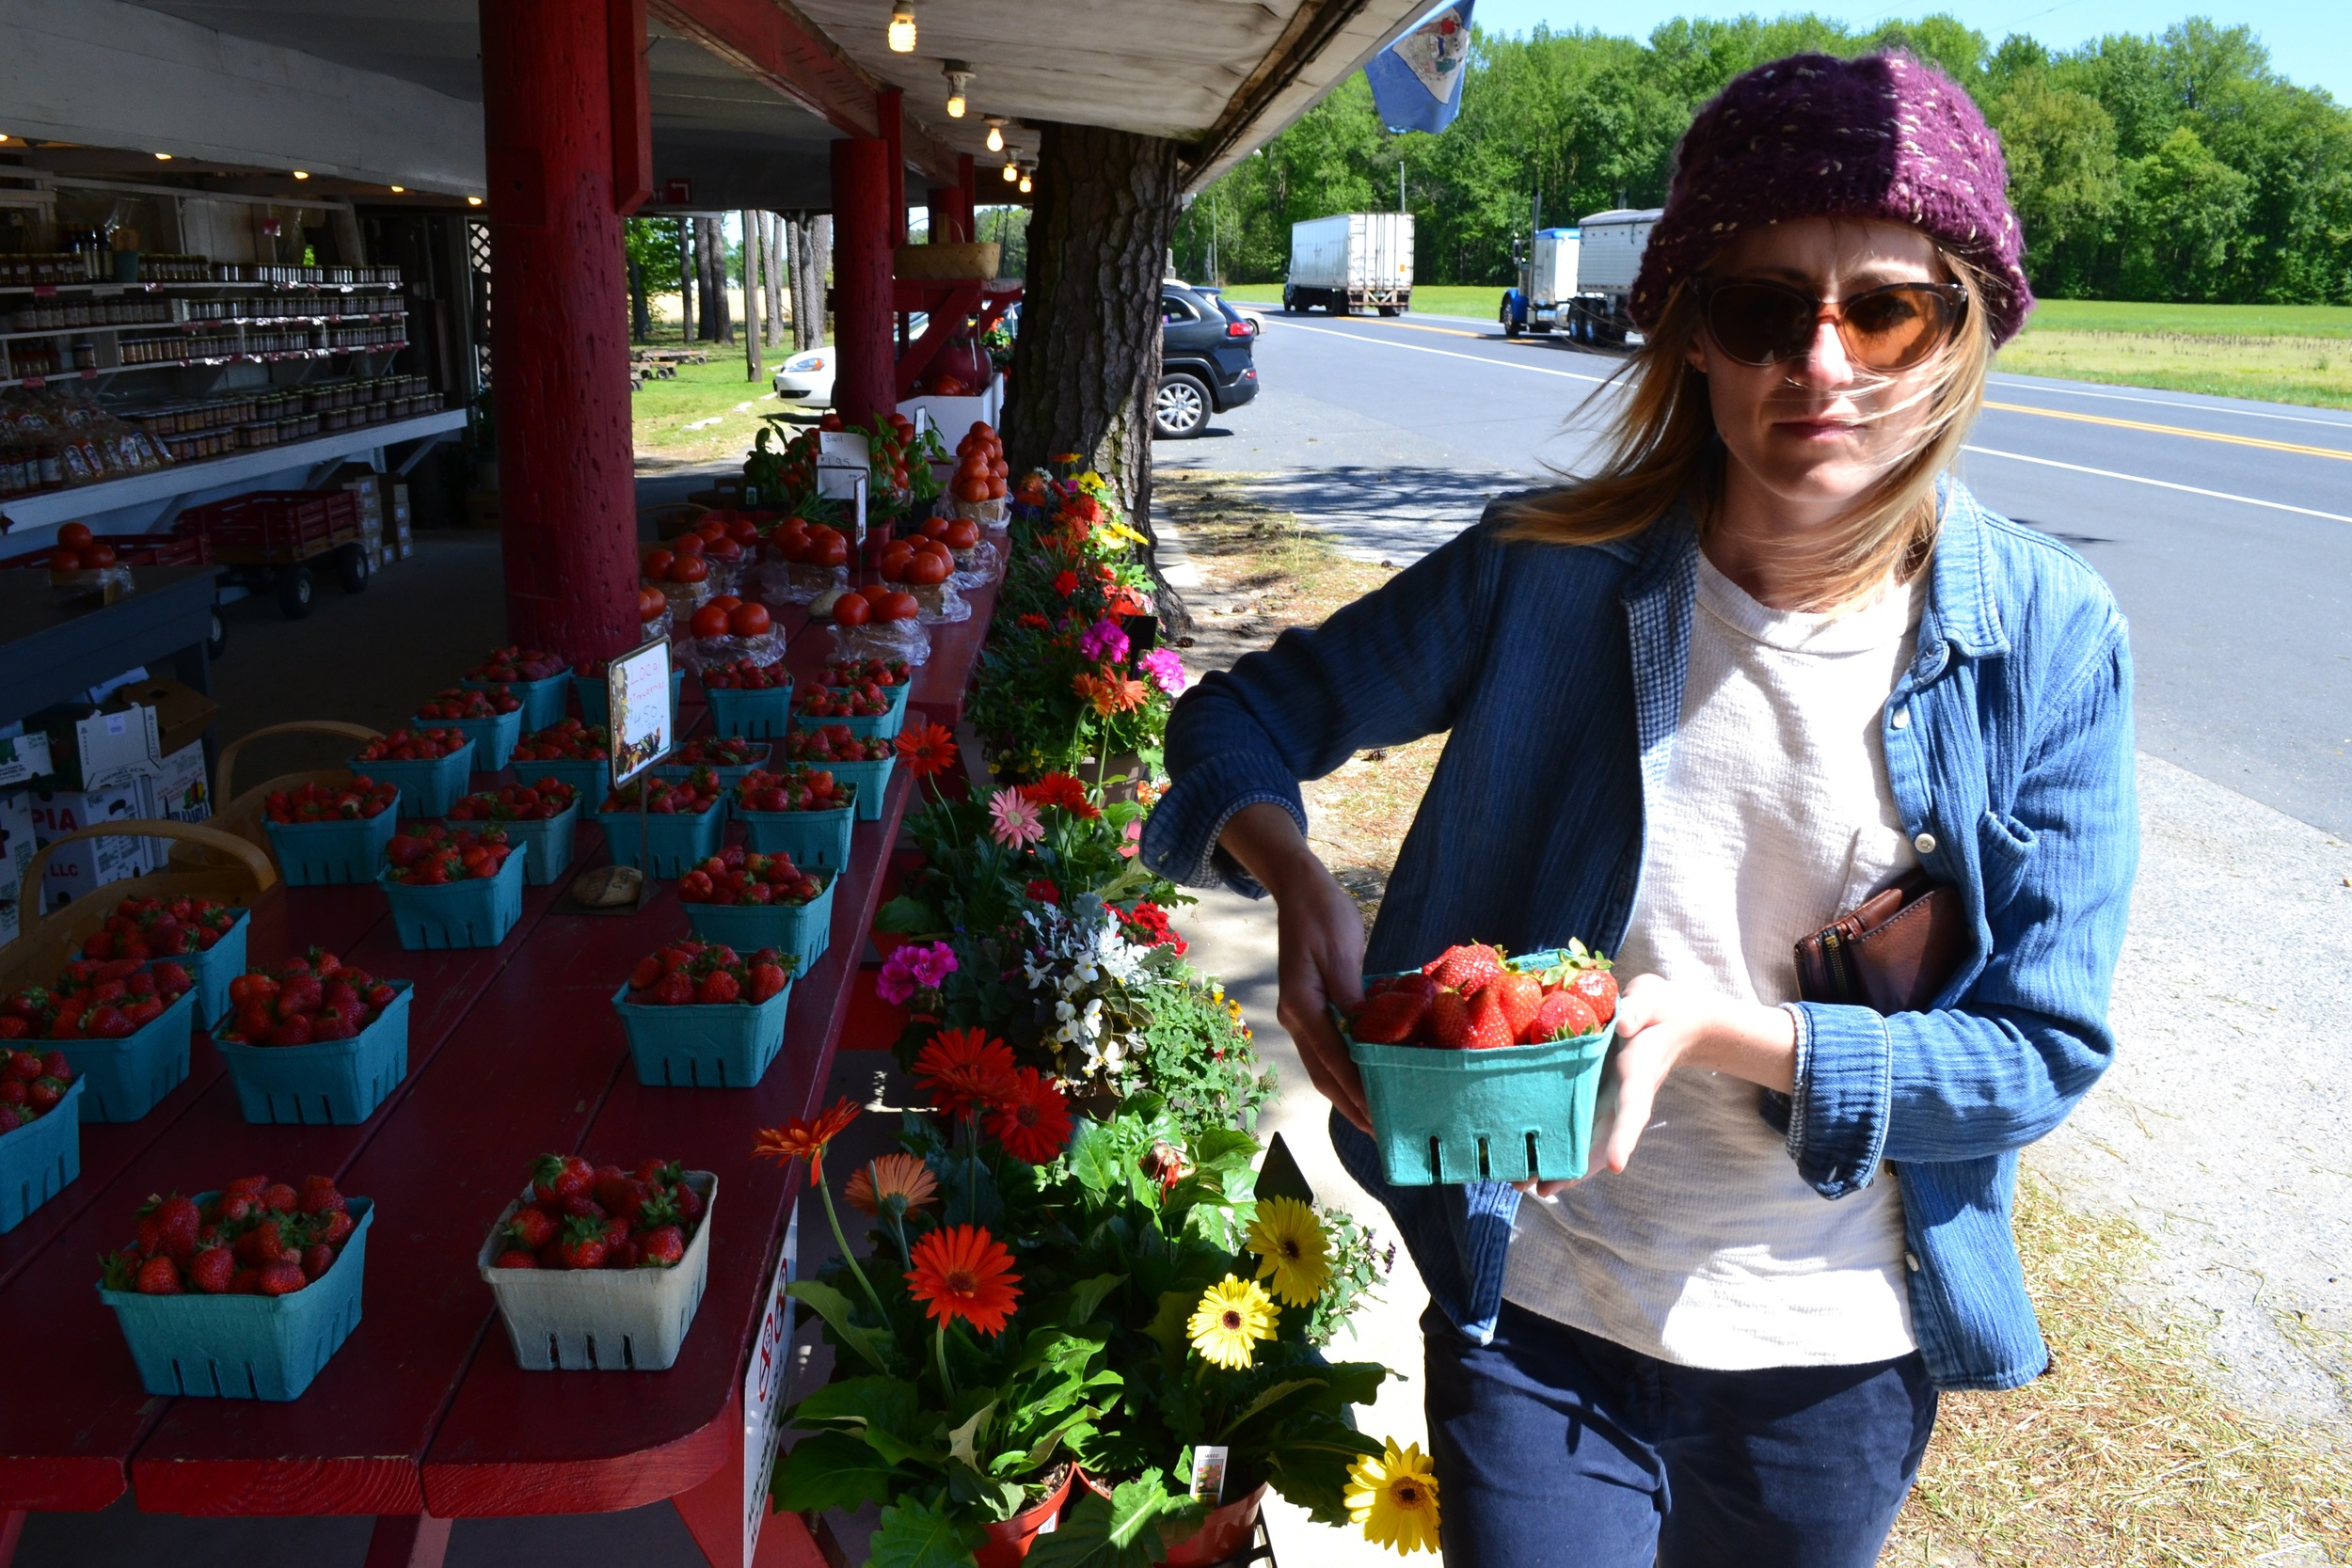 Mel on a mission to buy local produce at one of the many roadside produce stands.